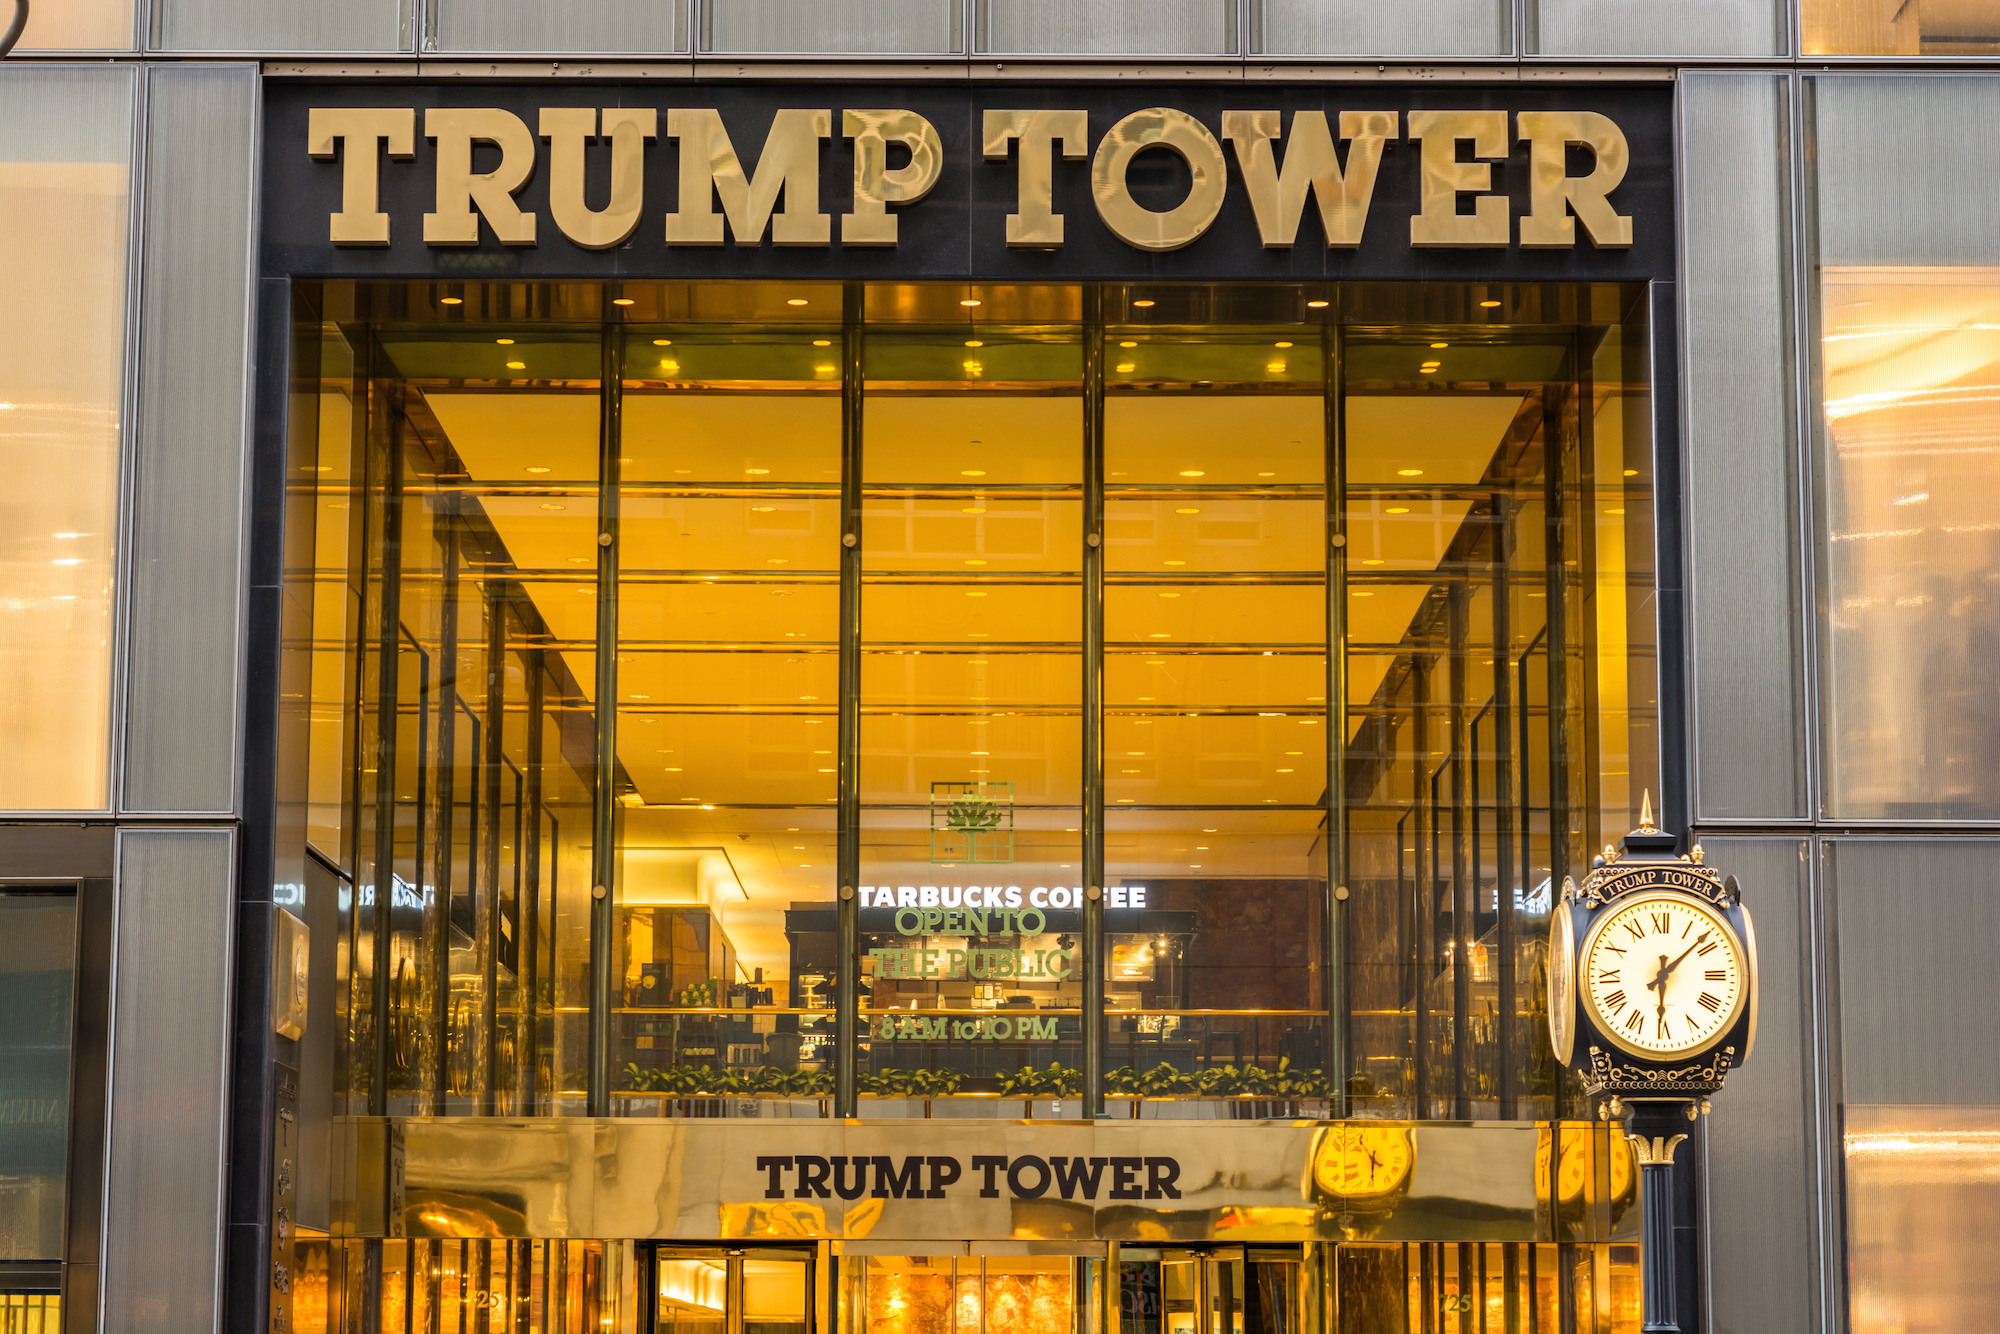 The sign of Trump Tower in NYC